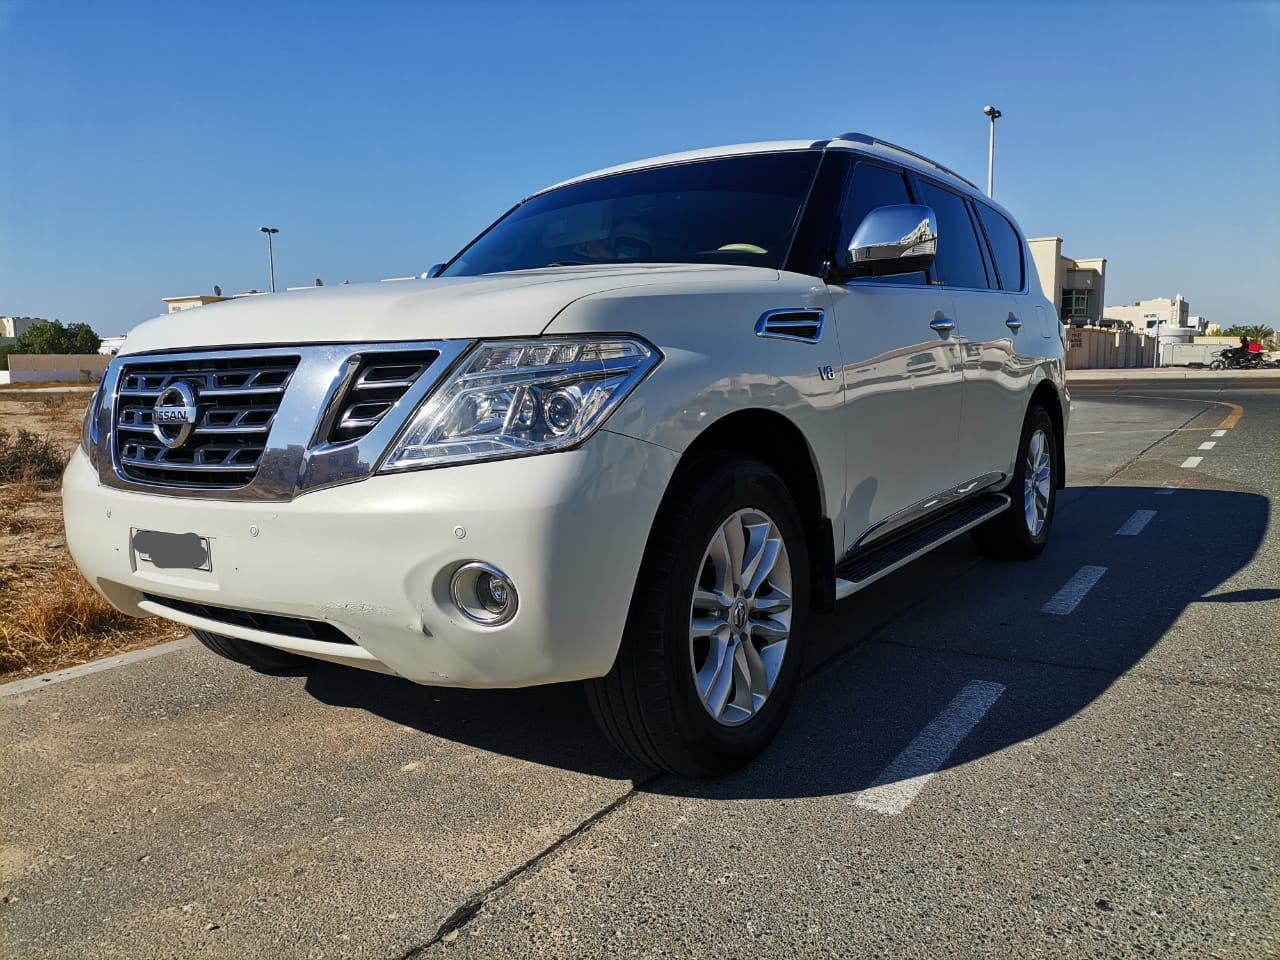 Used Nissan Patrol SE 2013 For Sale In Dubai